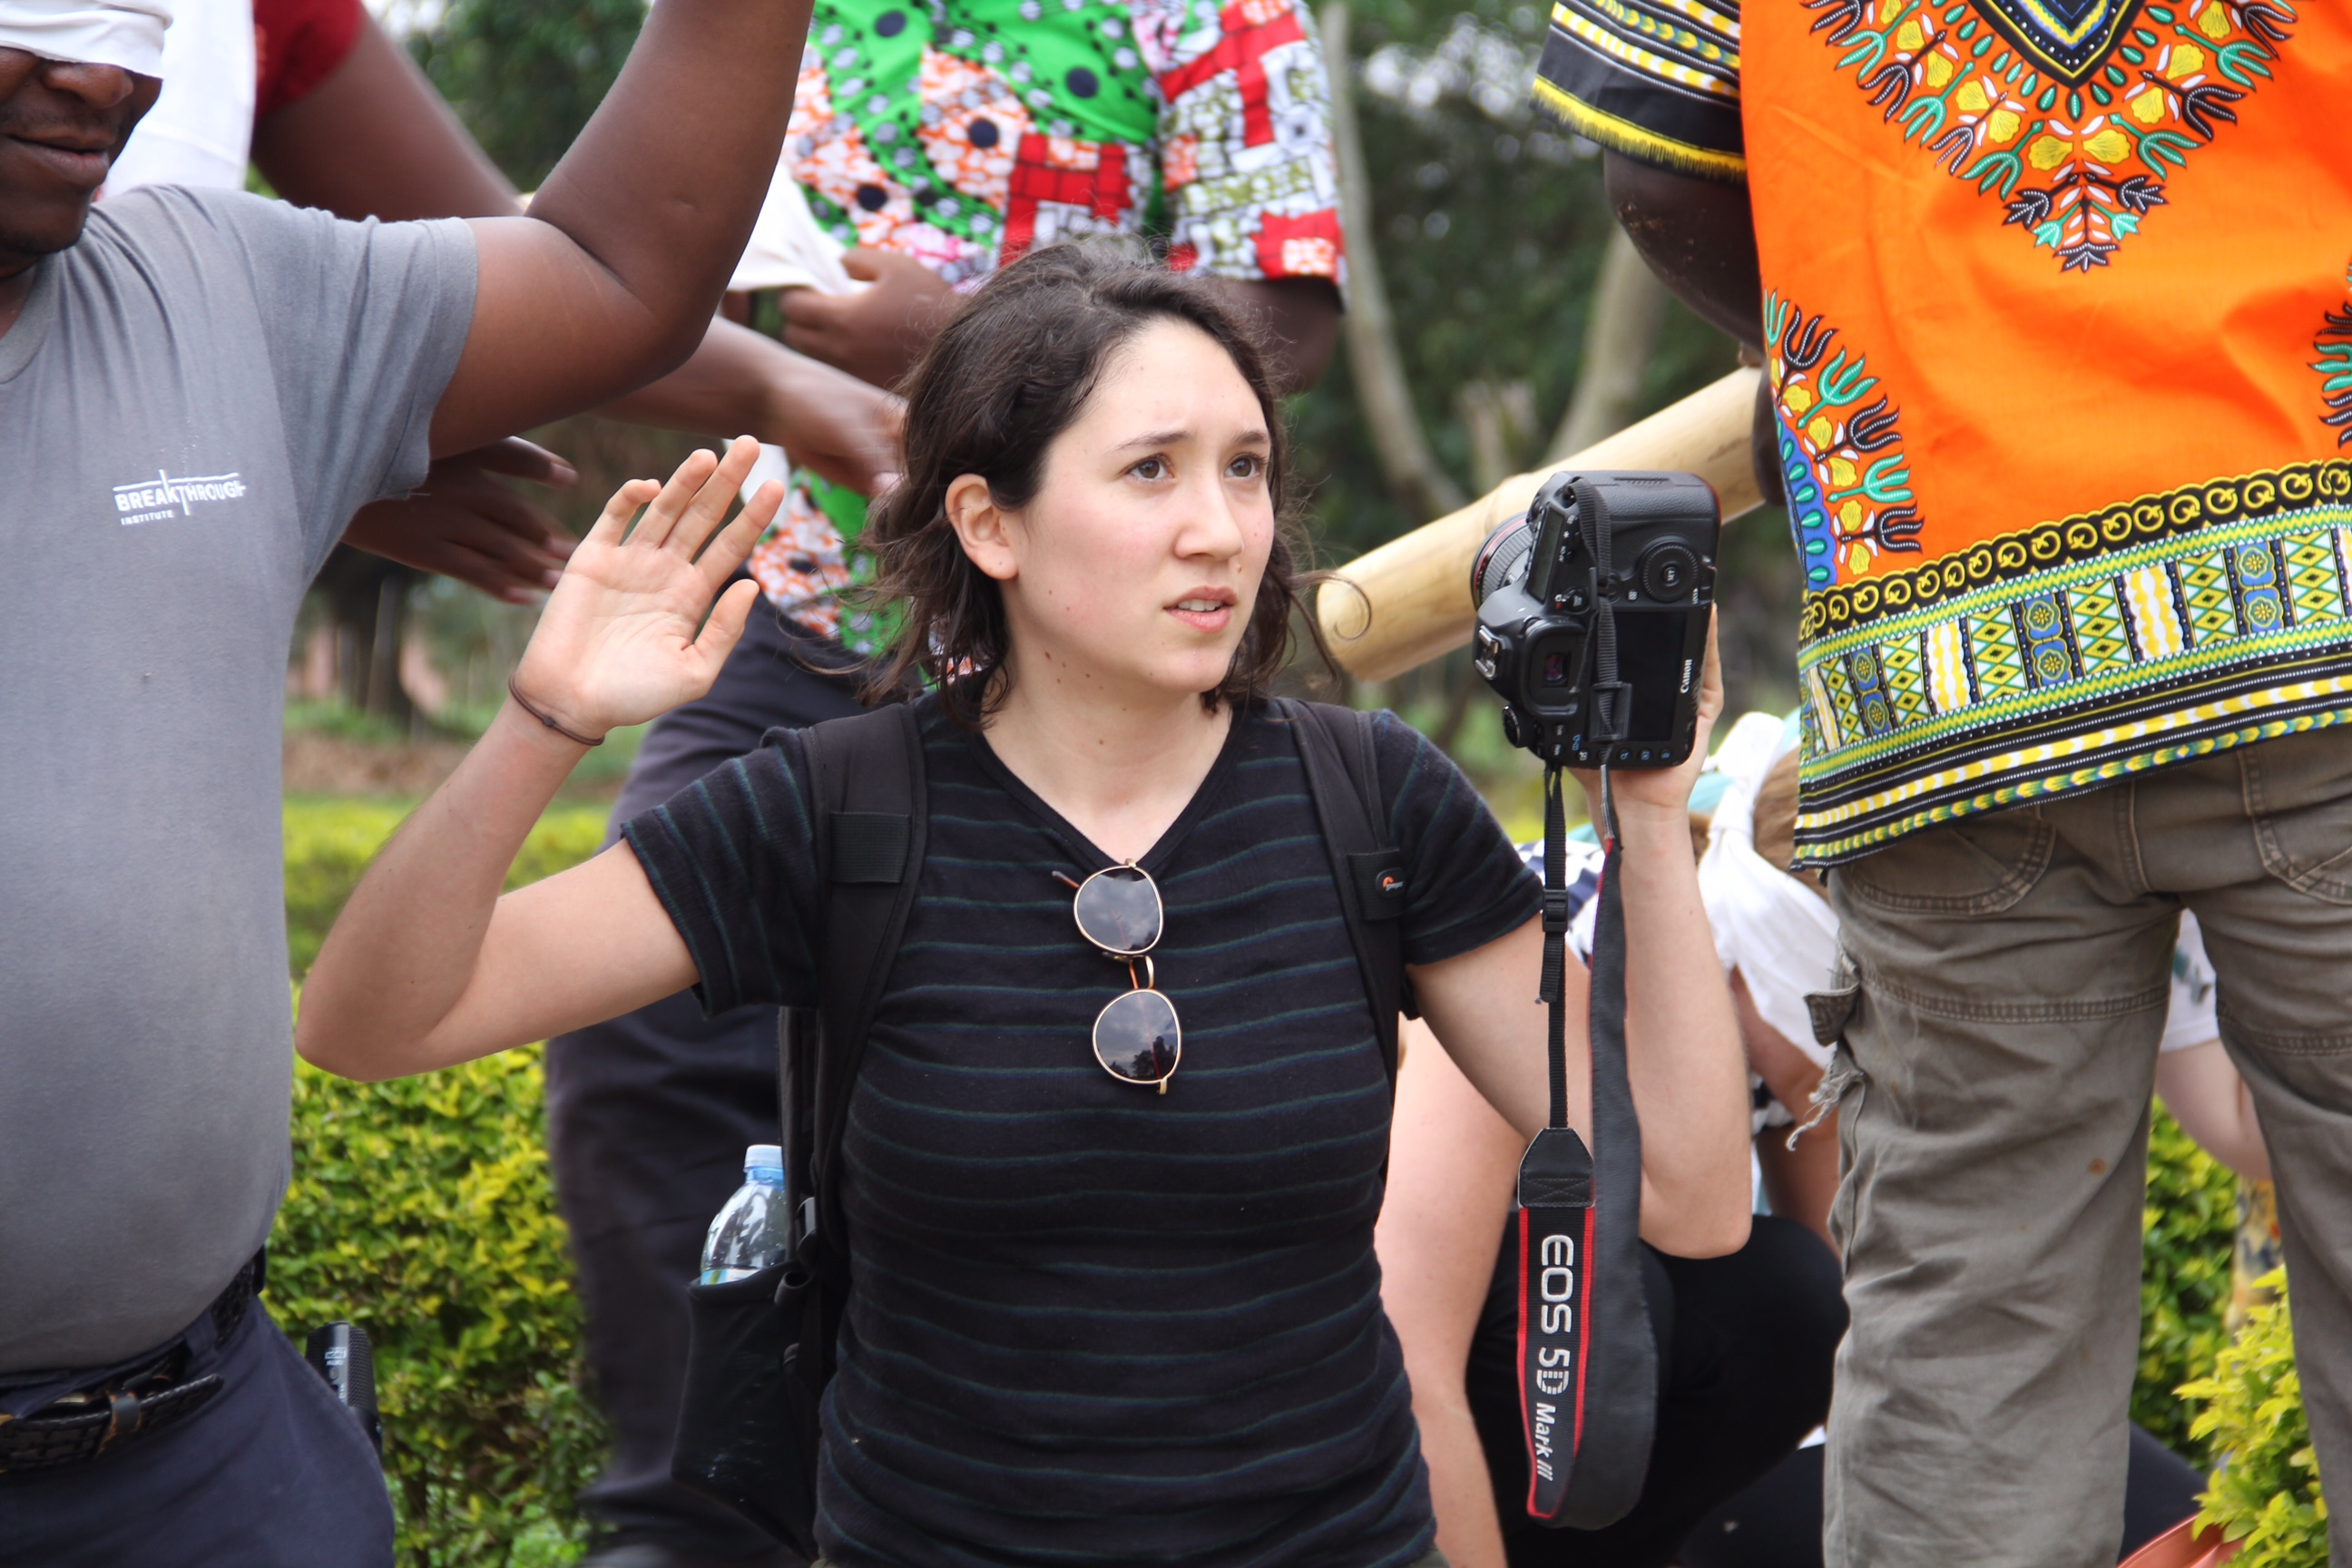 Cassandra Giraldo, a reporting fellow with the International Women's Media Foundation, participates in a hostage scenario during security training in Uganda. (Katie Moore)